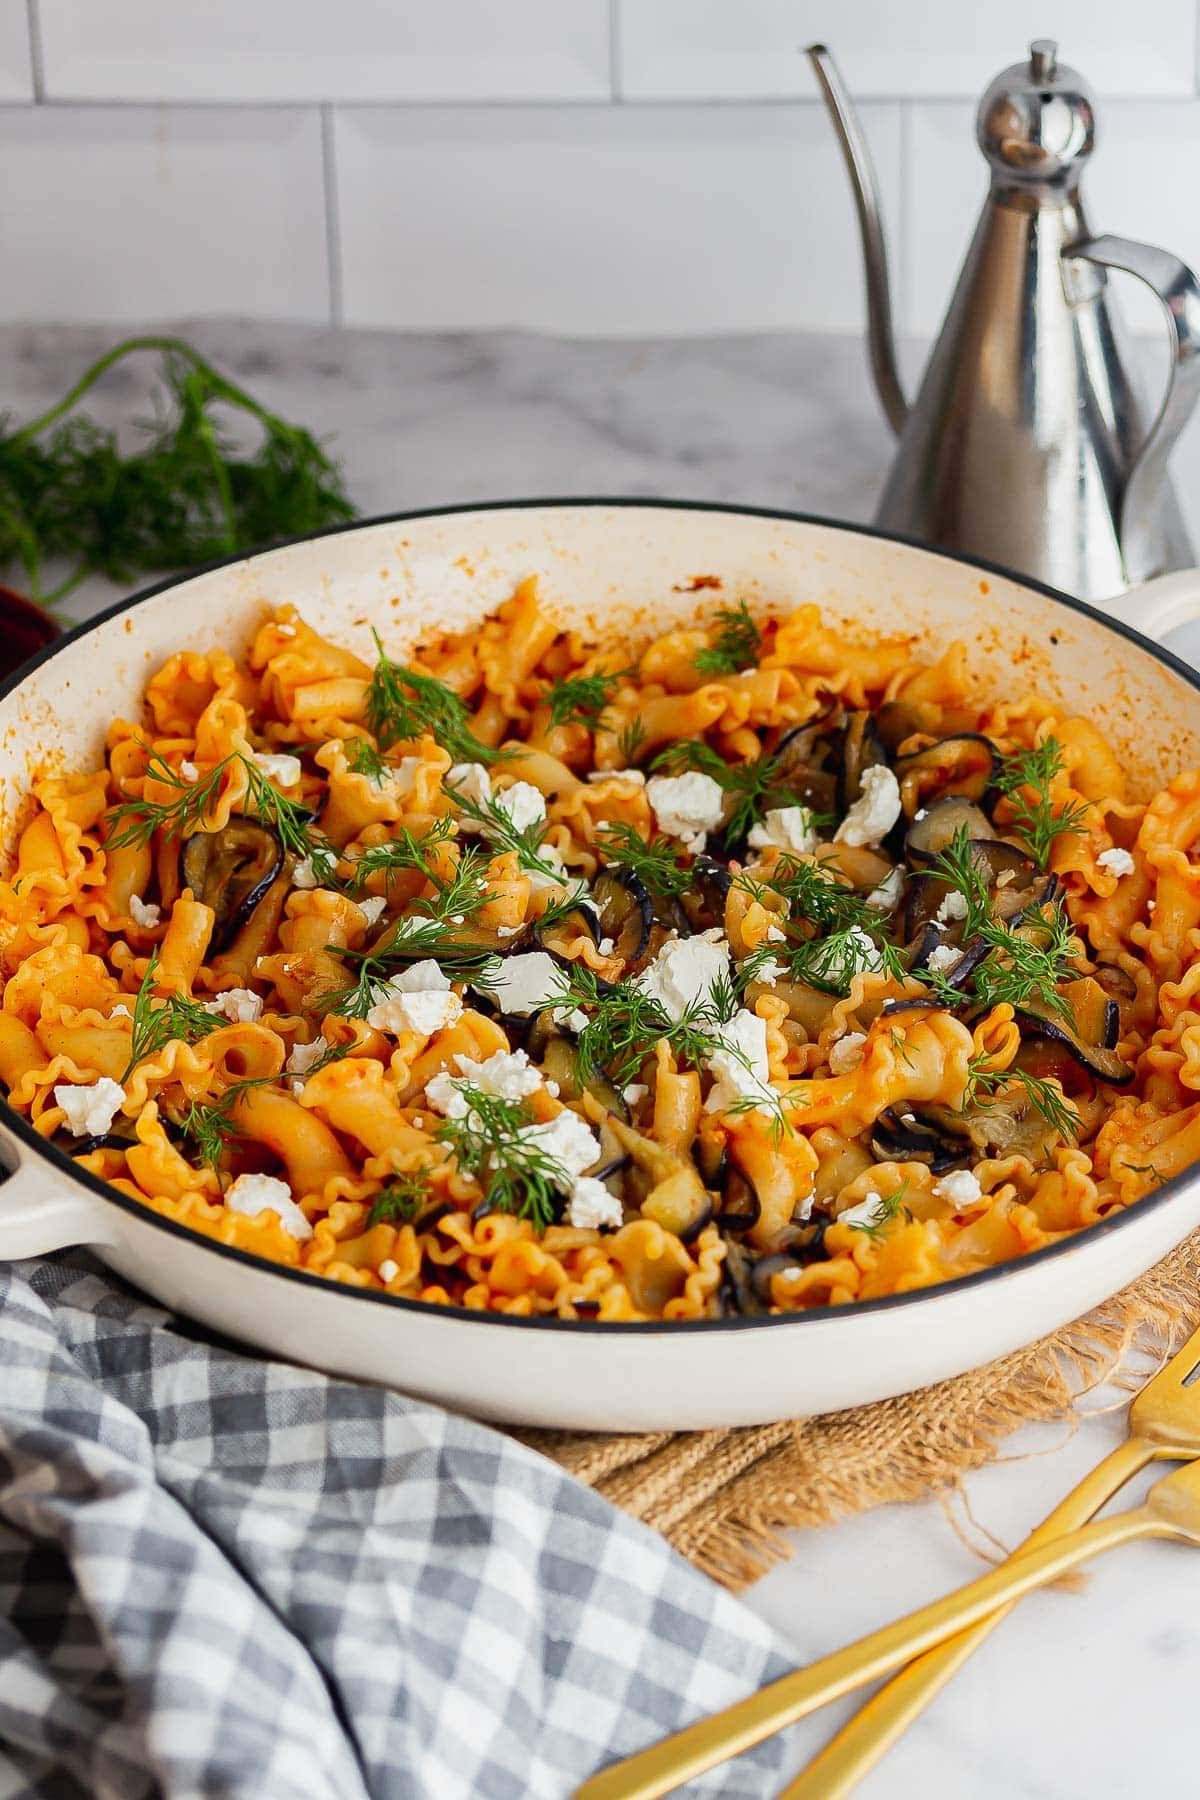 White skillet of spicy pasta with aubergine on a marble surface